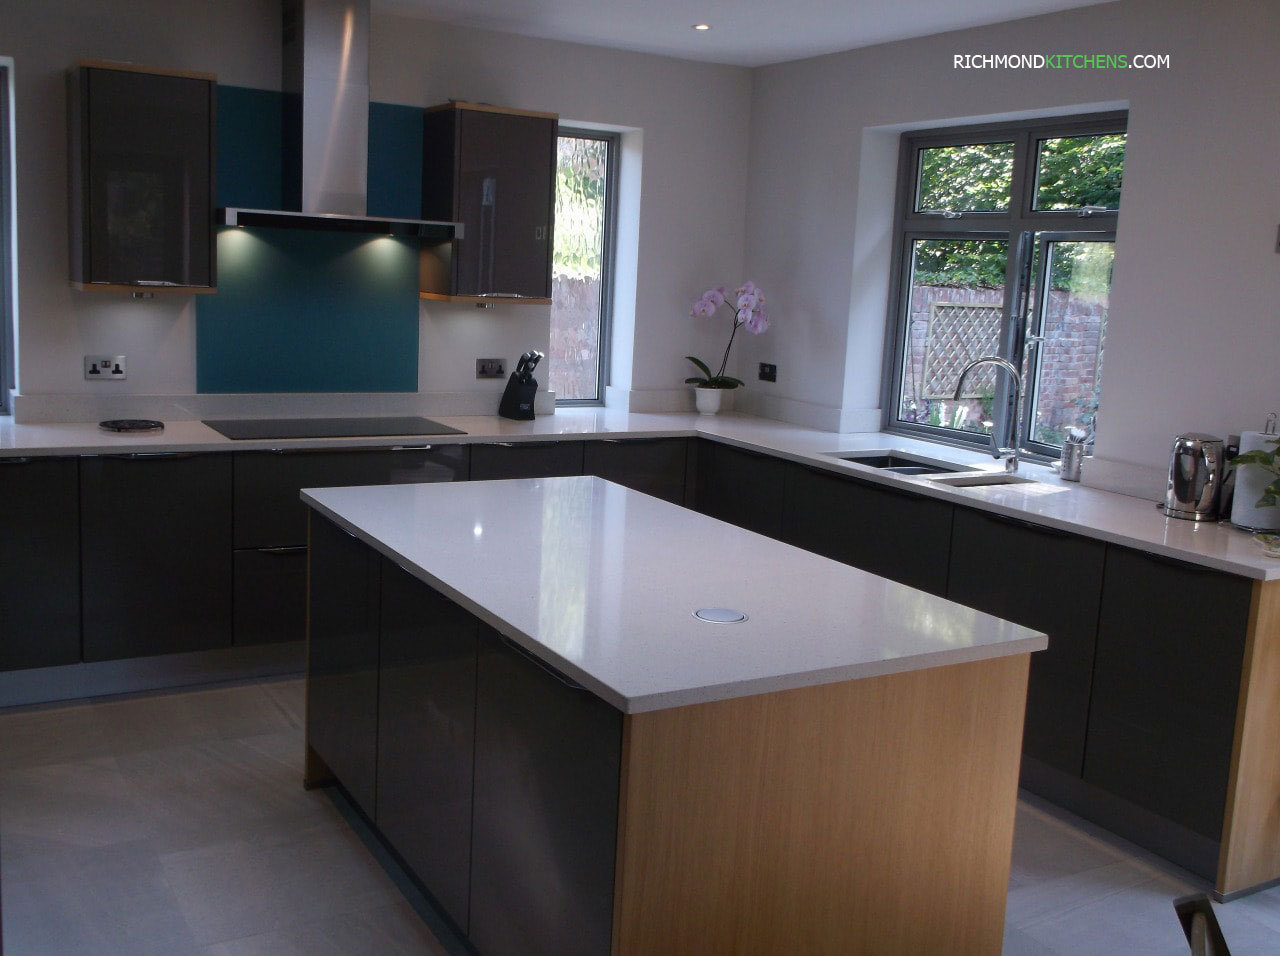 Kitchen Showroom Surrey Walton Upon Thames